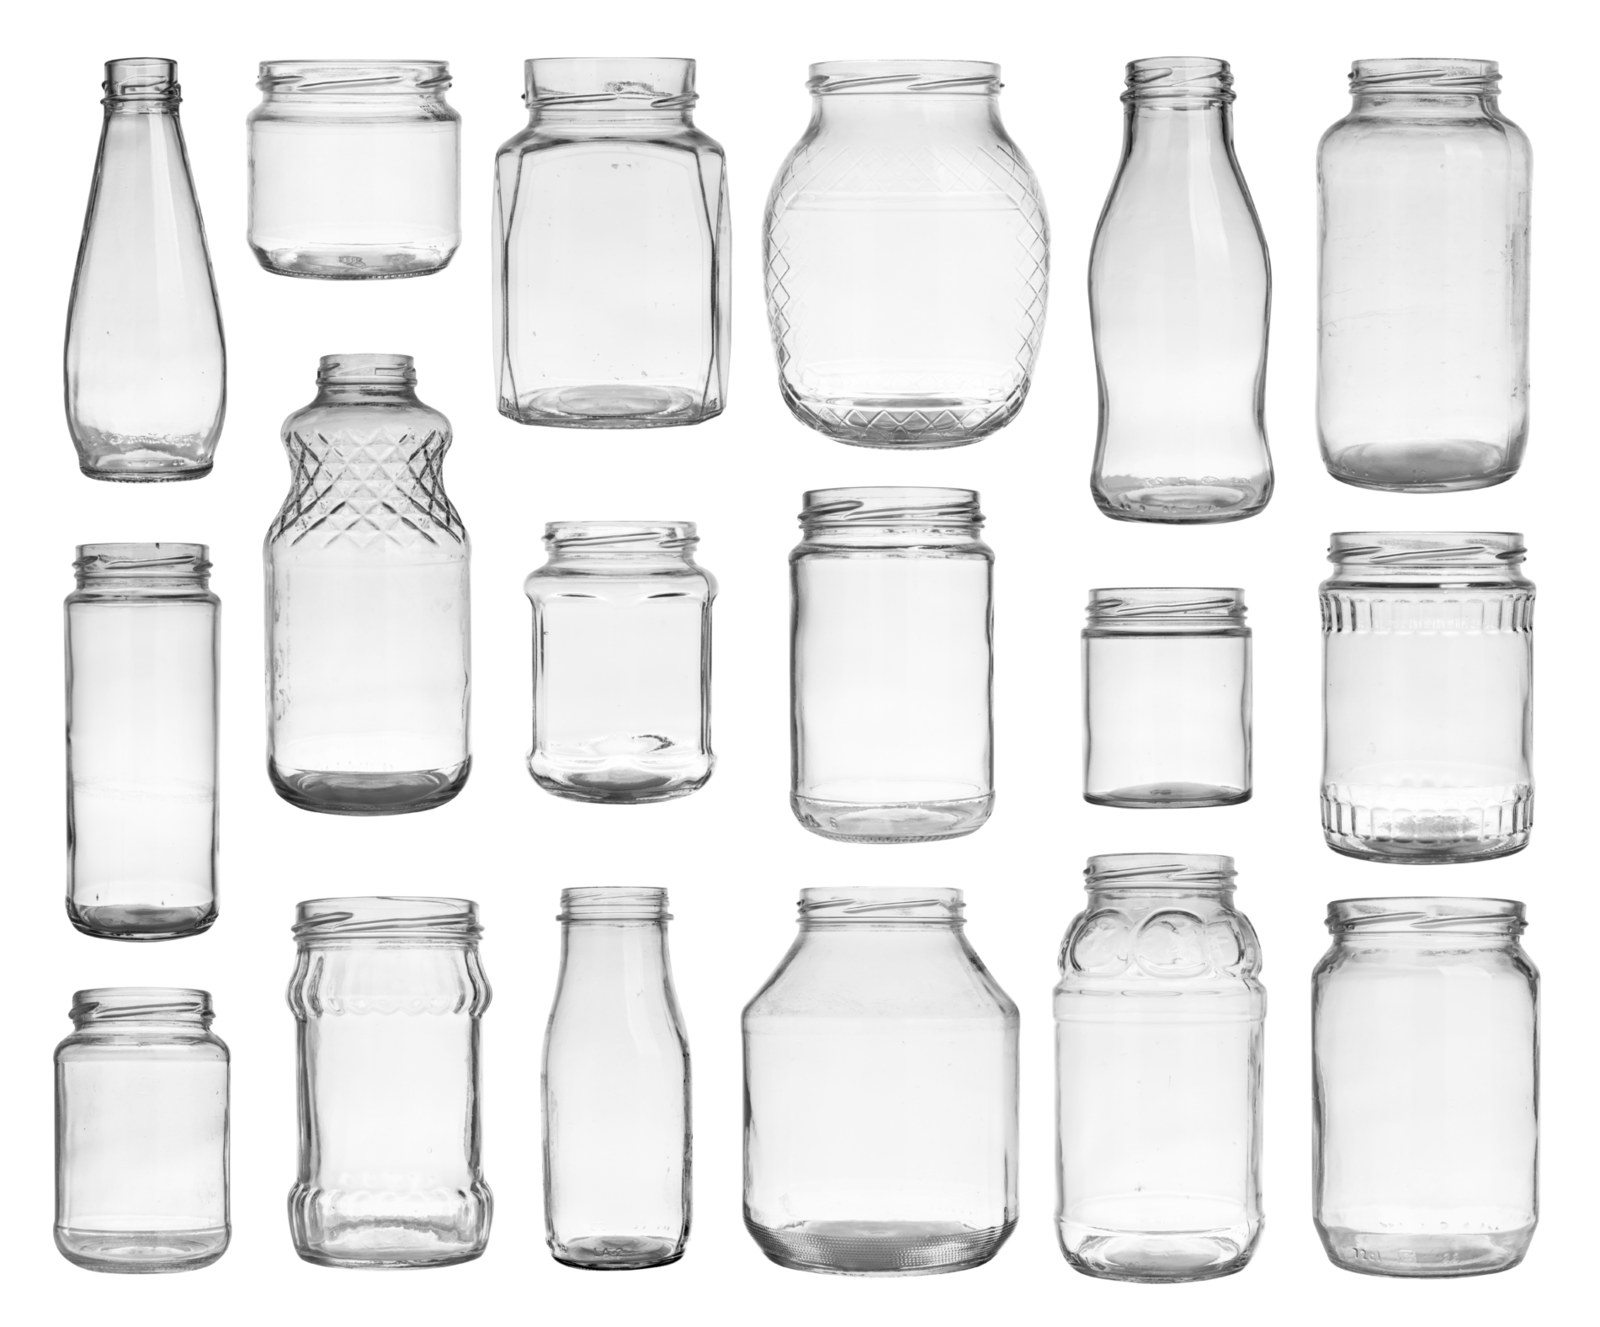 6 Things That Can Be Recycled, And 13 That Absolutely Can't